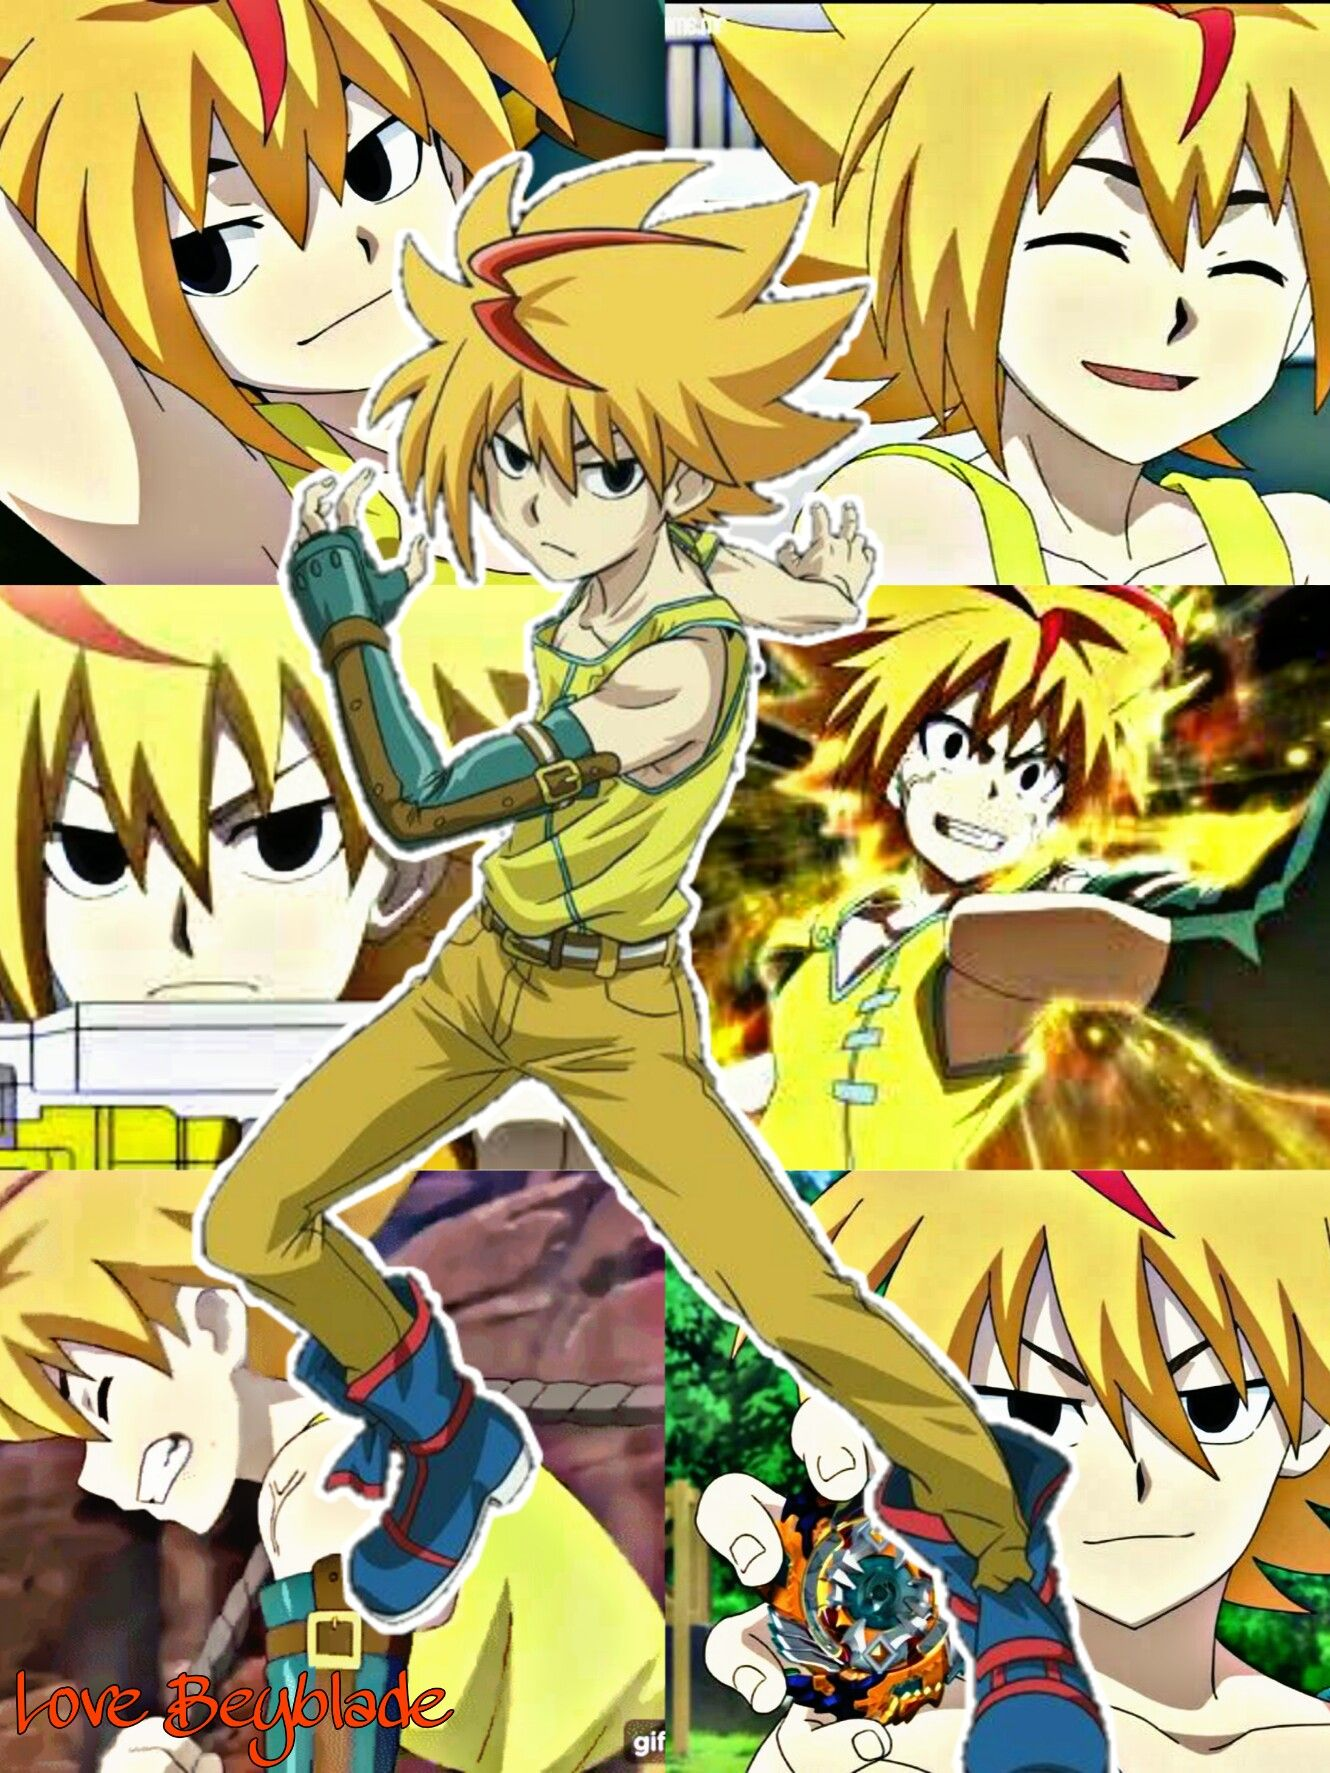 Pin By Meredith Speicher On Free De La Hoya Free Characters Beyblade Burst Beyblade Characters